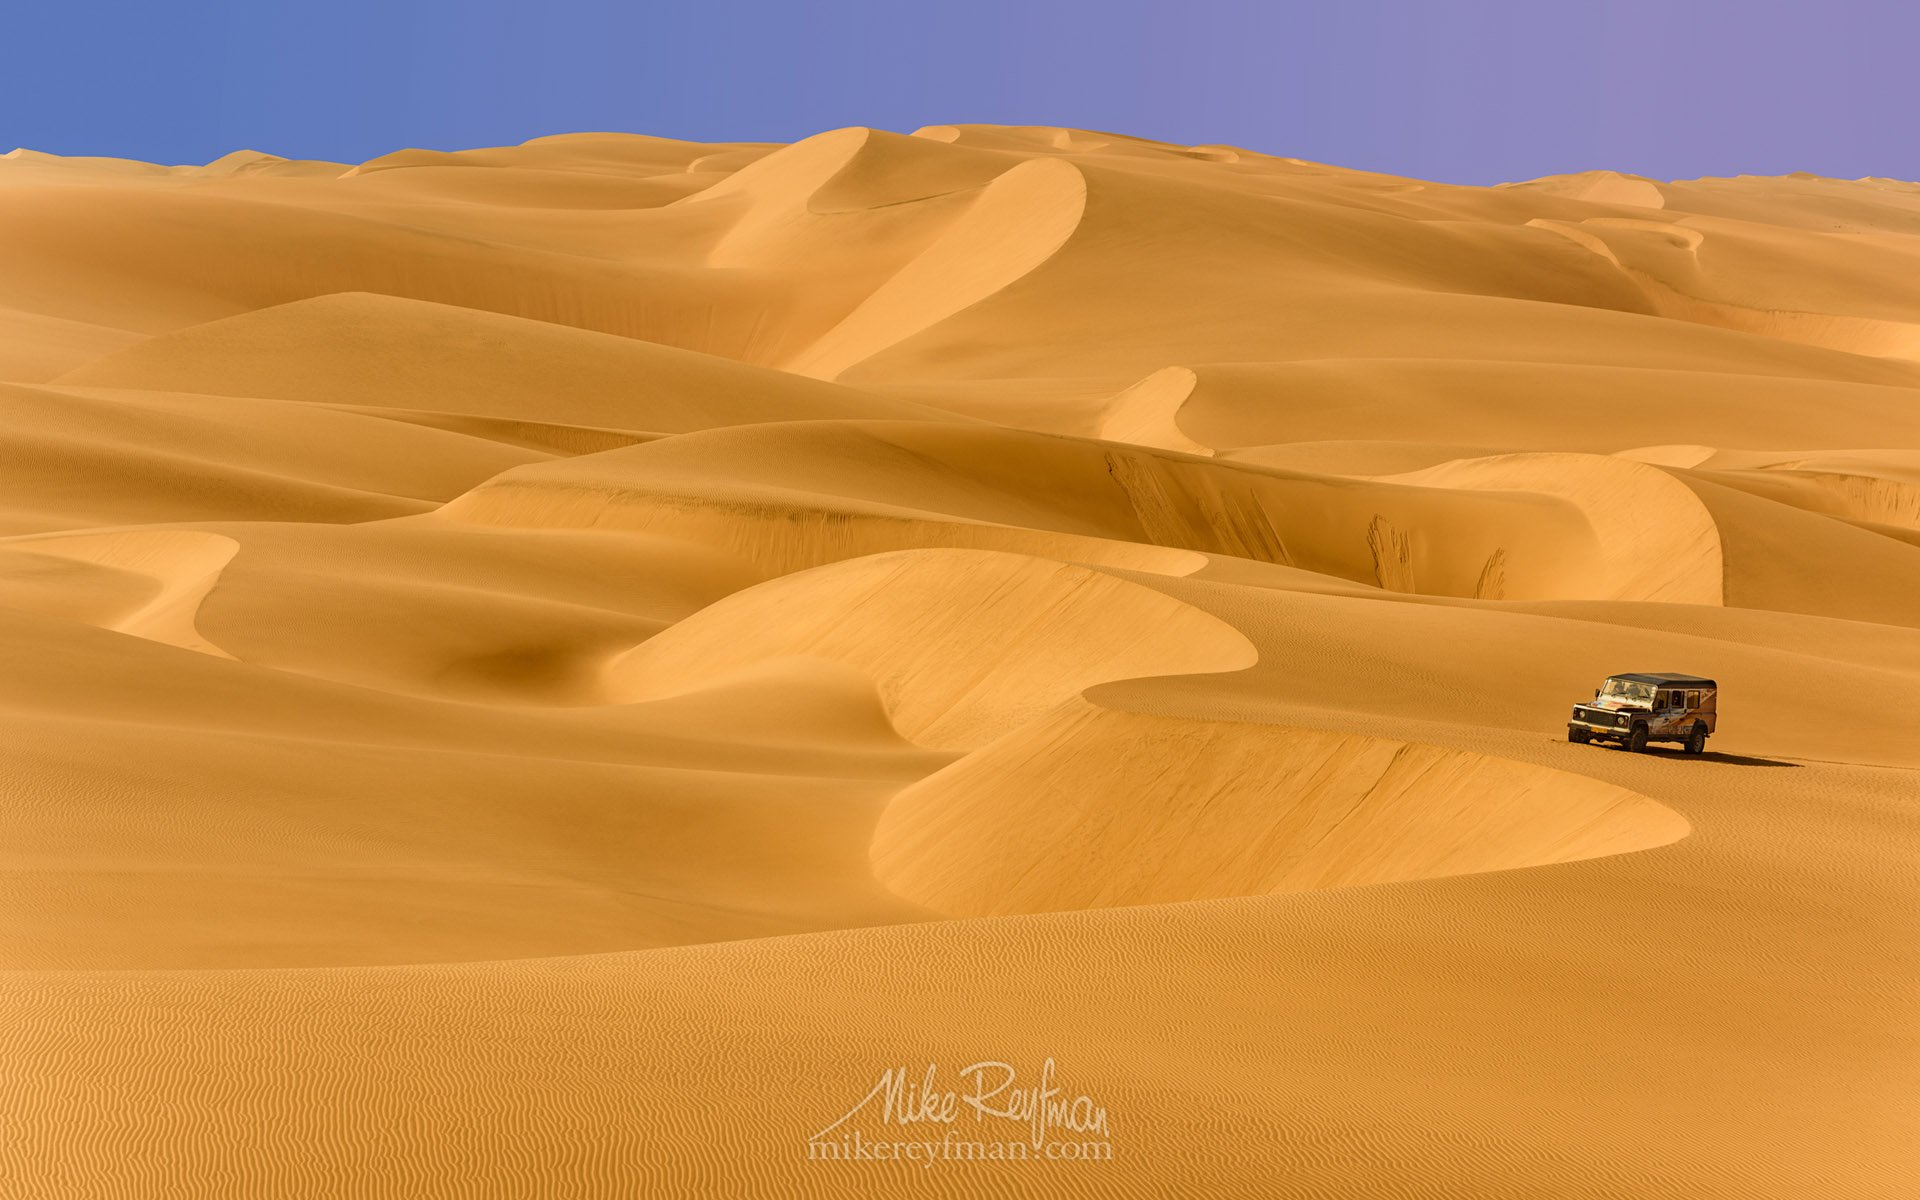 Namib Naukluft National Park, Namibia, Sandvich Harbor Dunes, Майк Рейфман